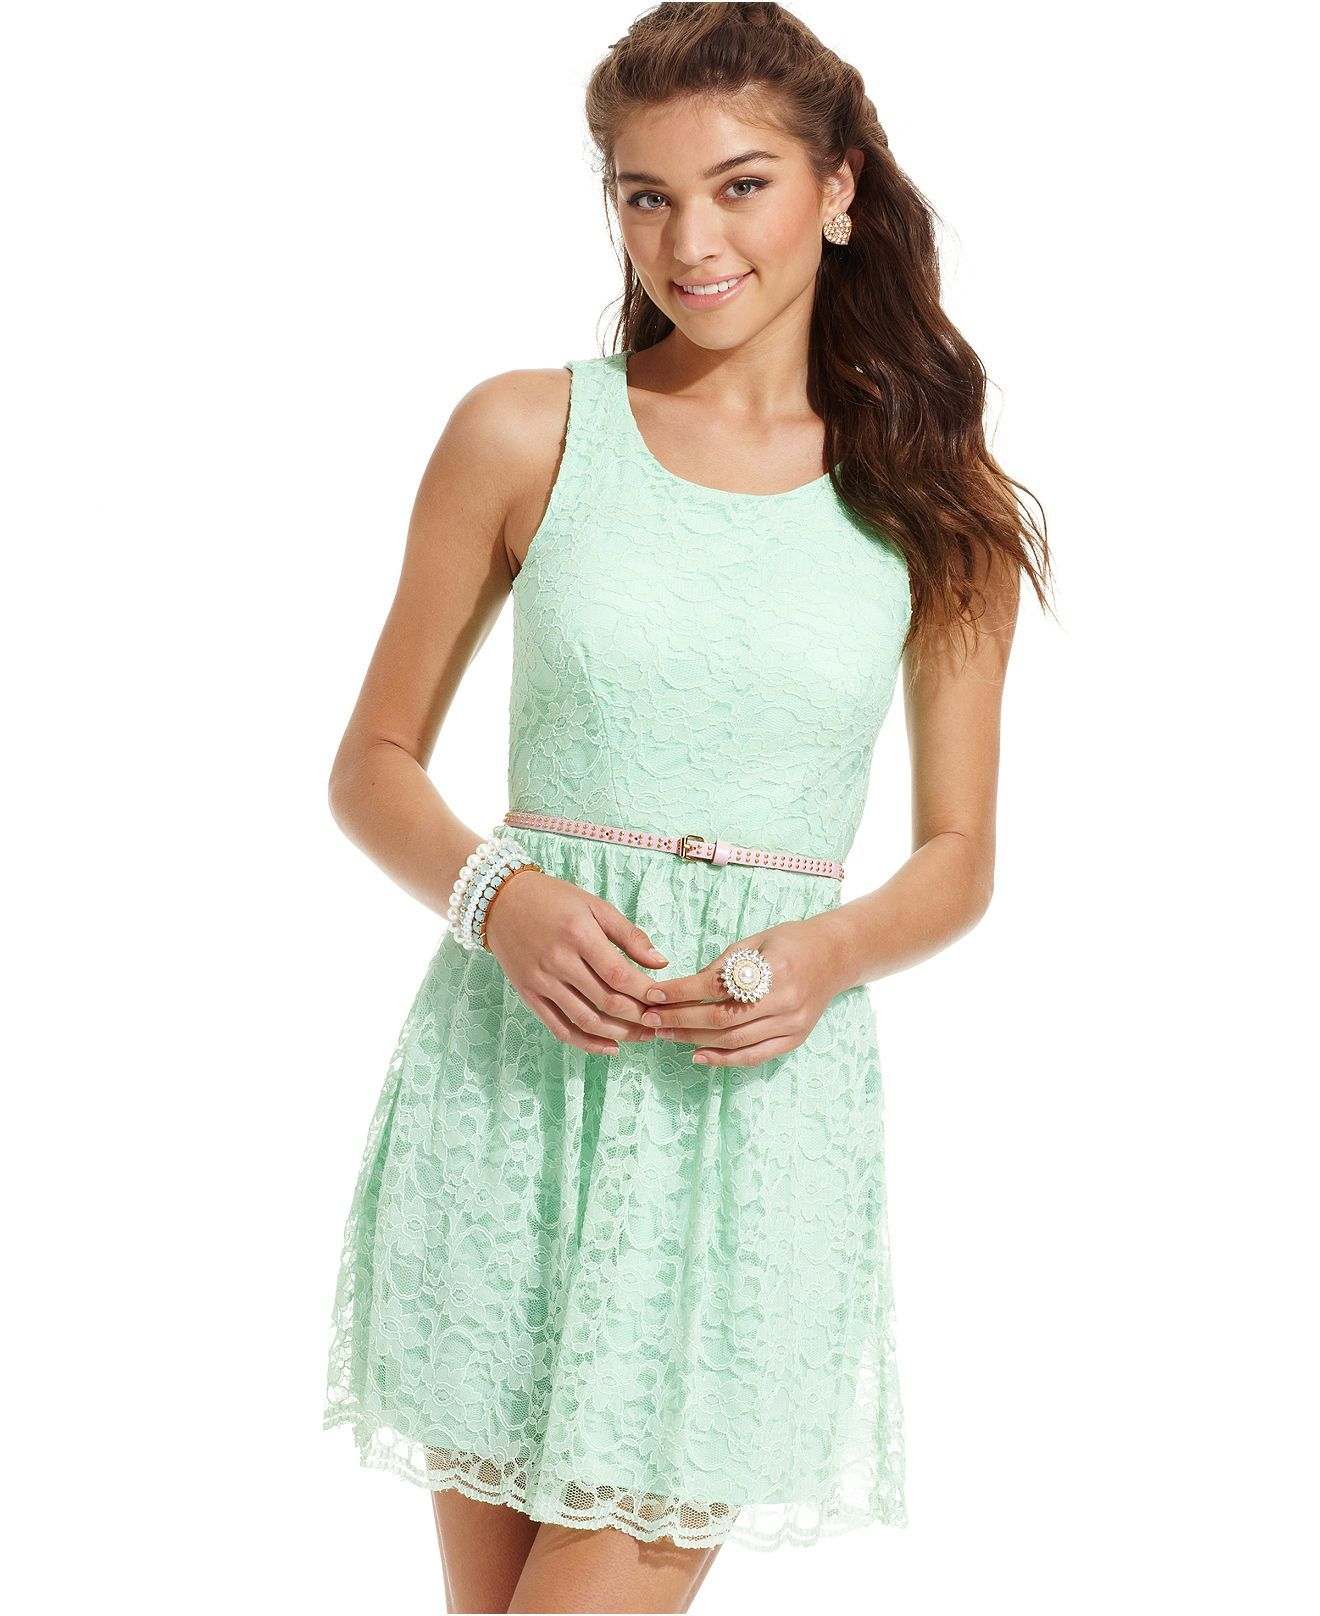 City Studios Juniors Dress, Sleeveless Belted Lace ...